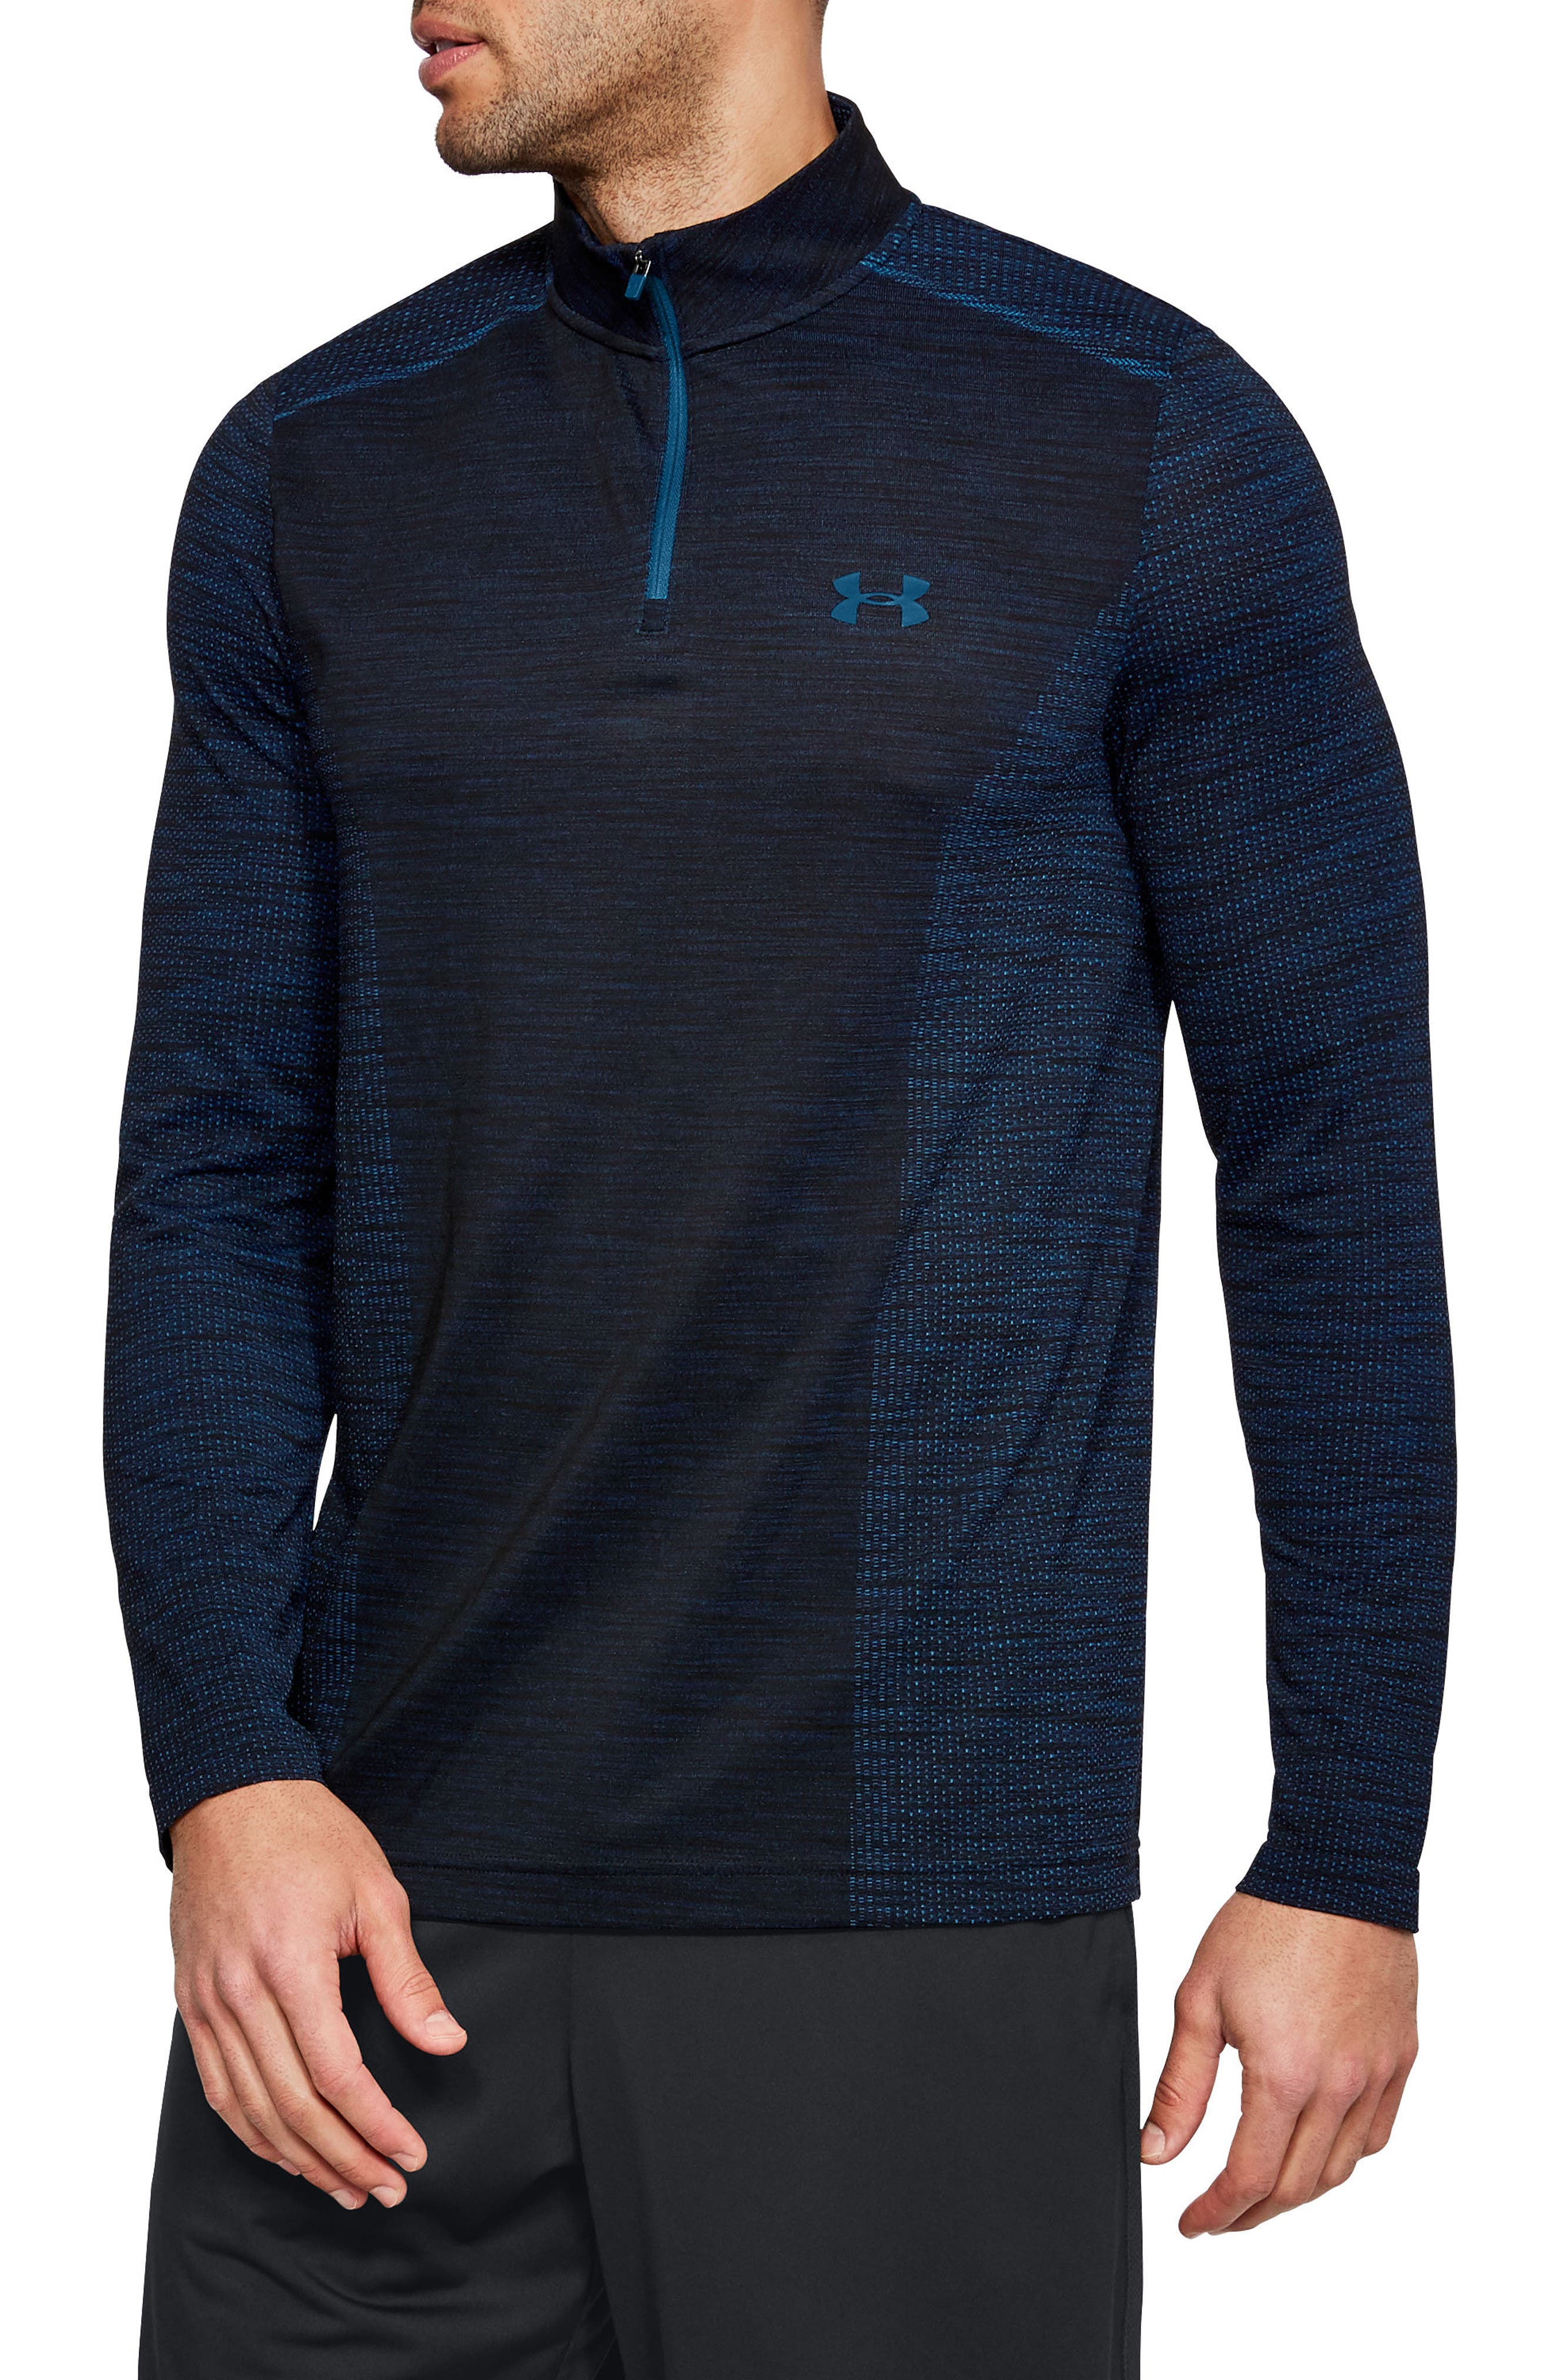 Under Armour Mens 1/4 Zip Long Sleeve Pullover Size L Heatgear Navy/black Easy To Use Activewear